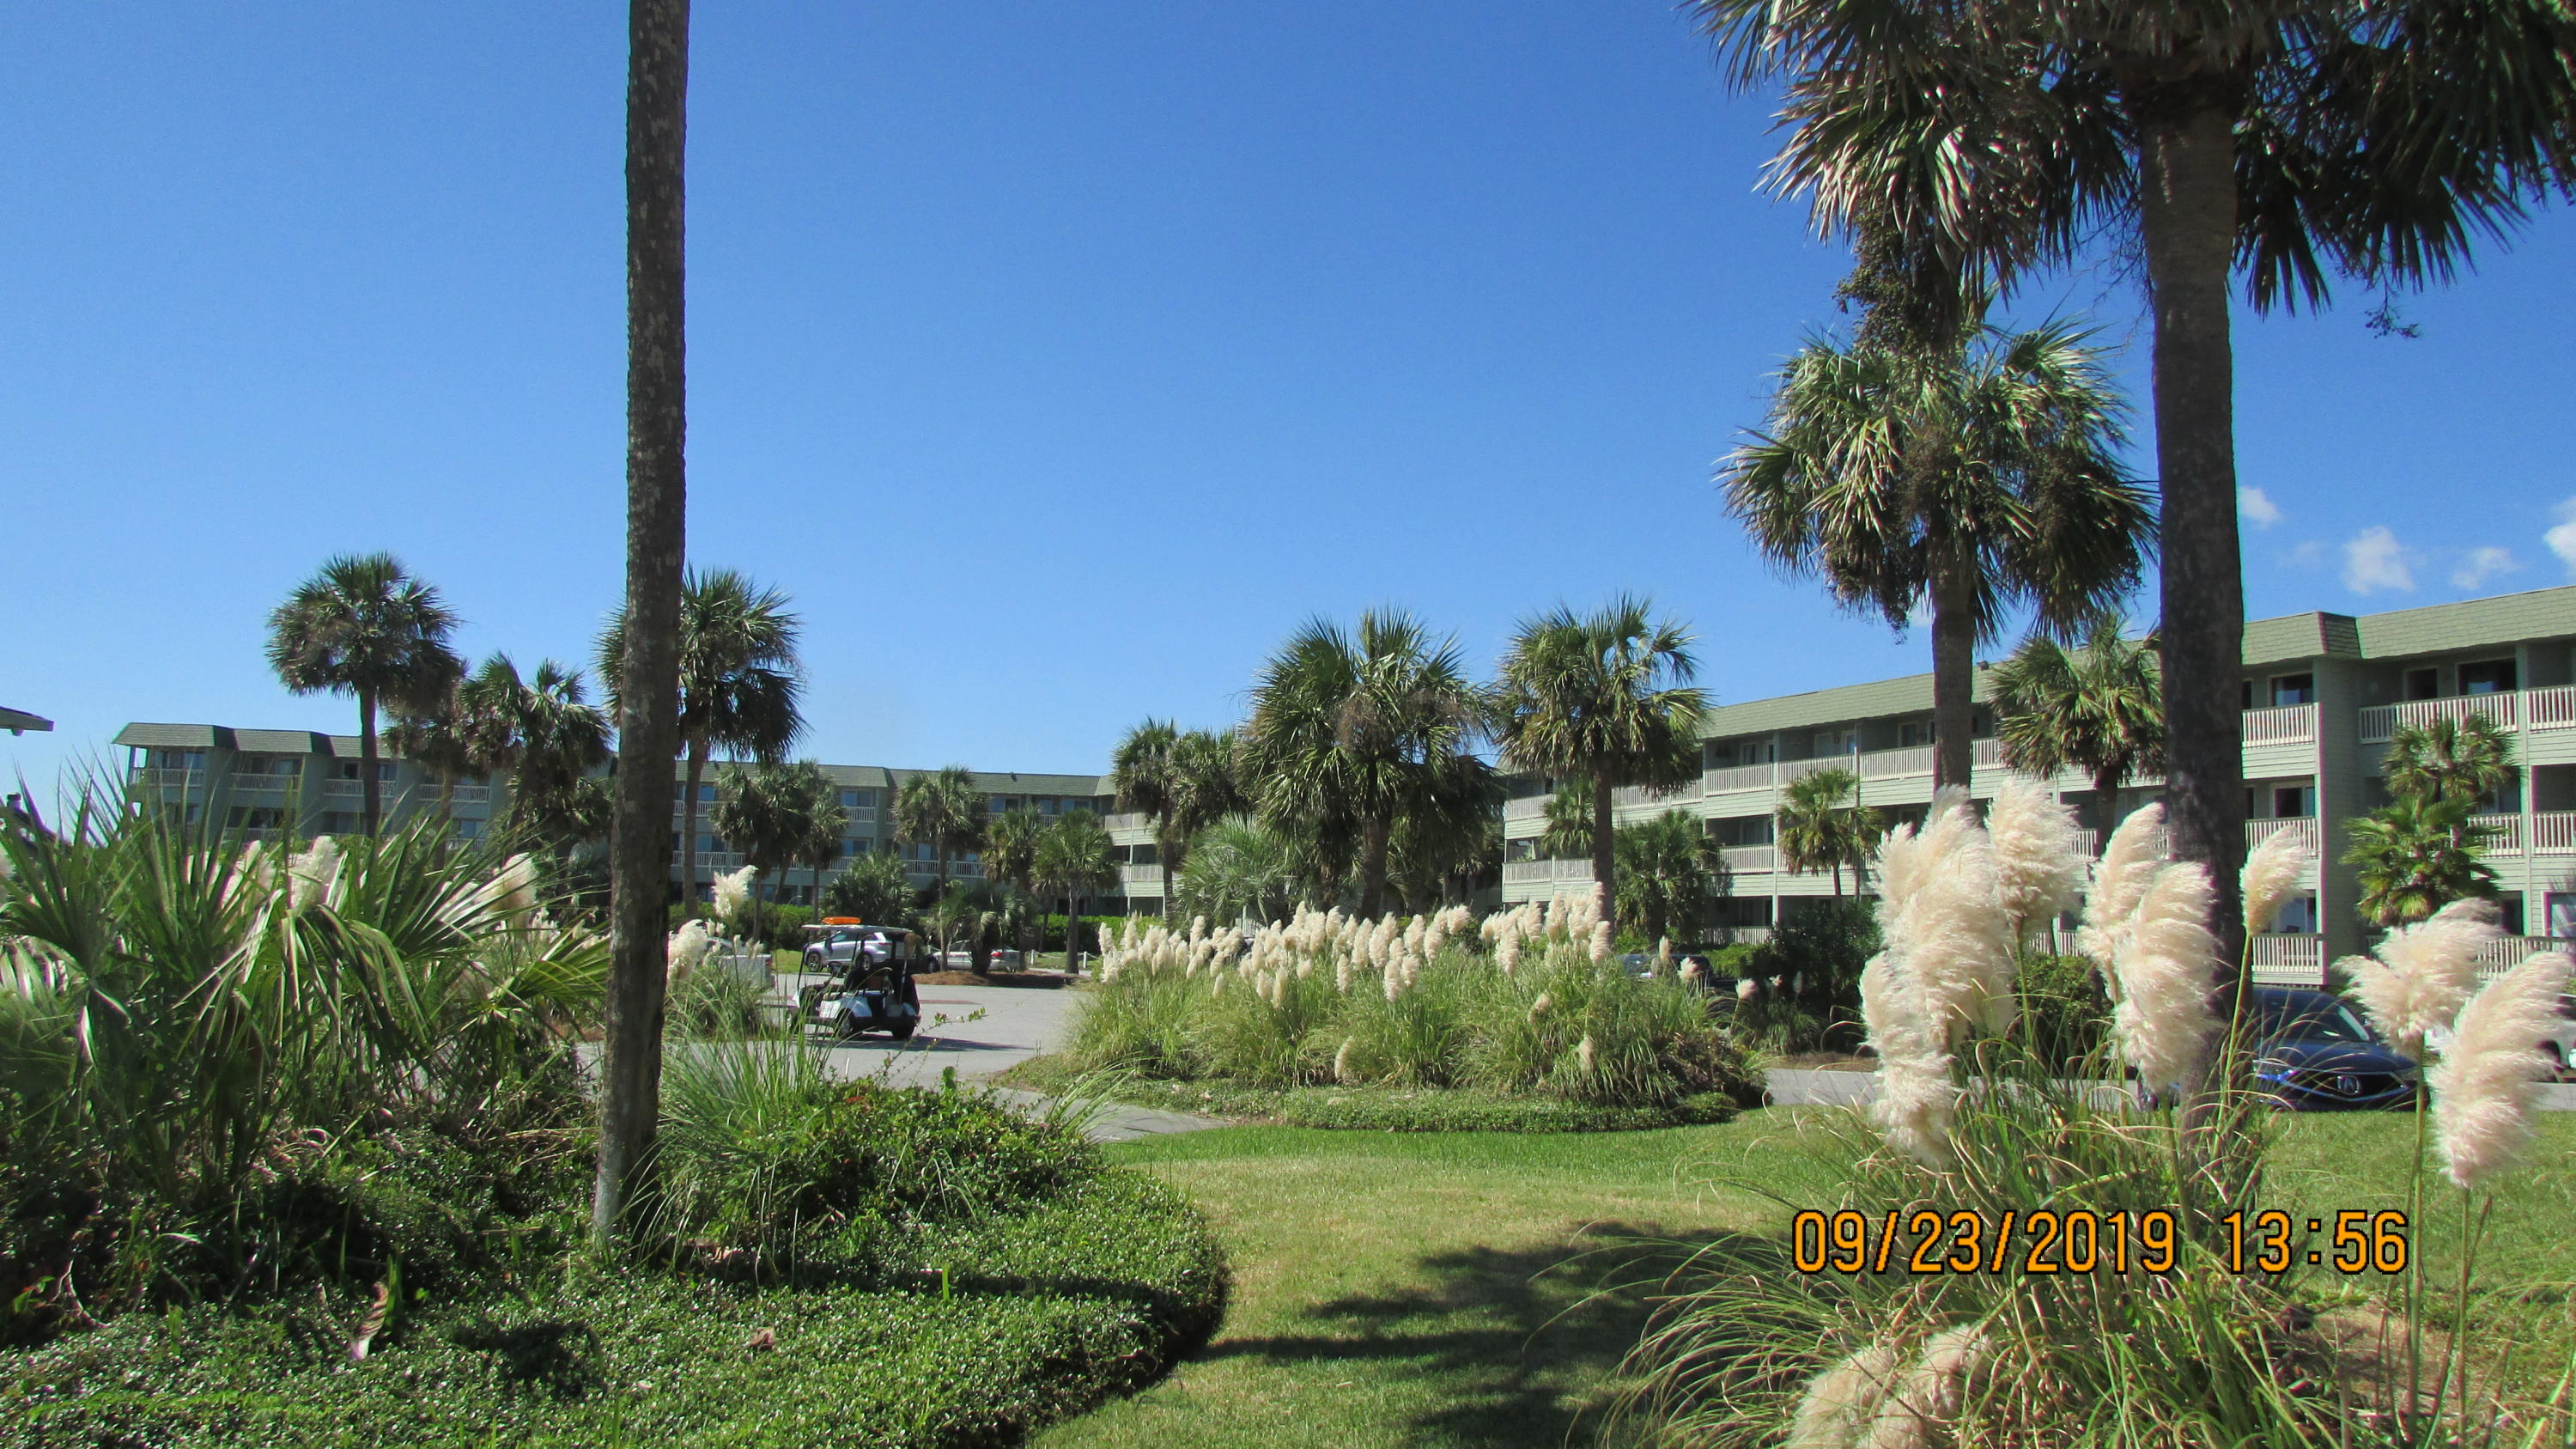 Sea Cabin On The Ocean Homes For Sale - 1300 Ocean, Isle of Palms, SC - 11